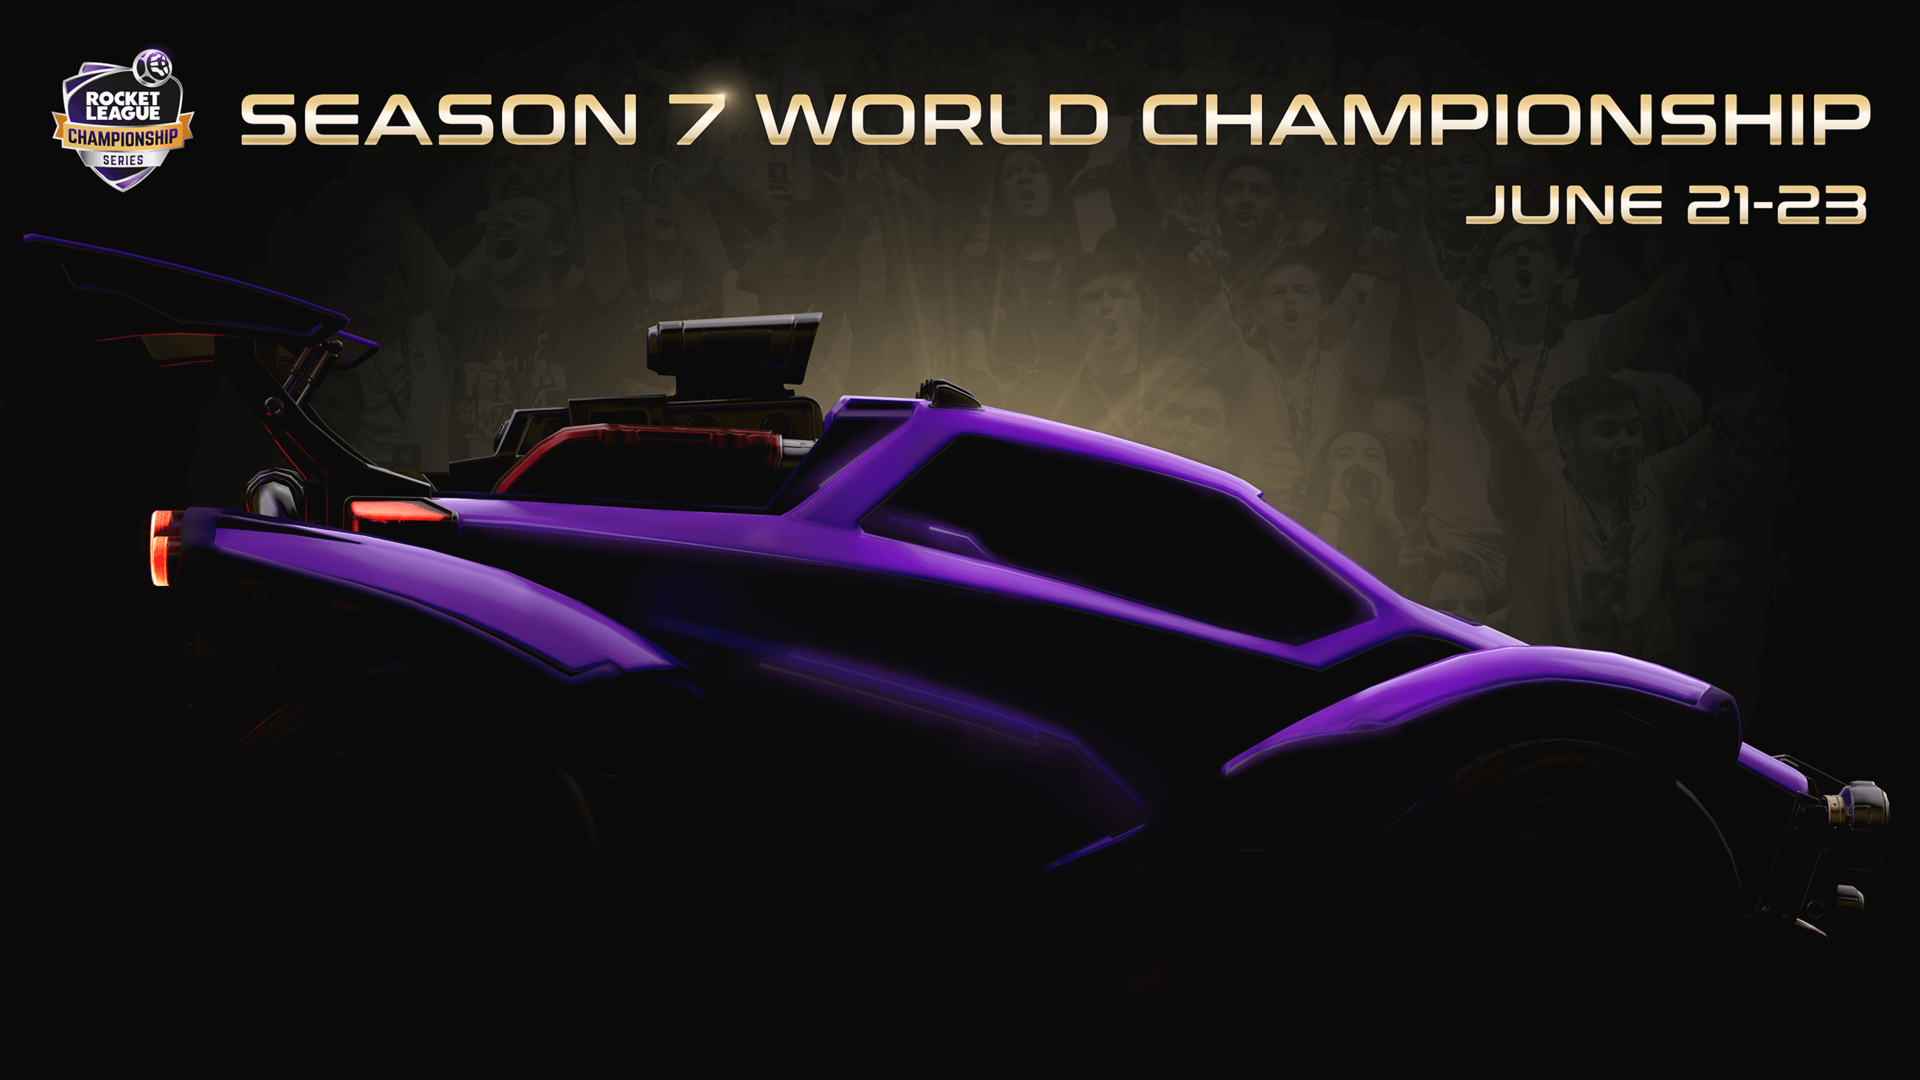 RLCS Season 7 World Championship Headed to the East Coast Image